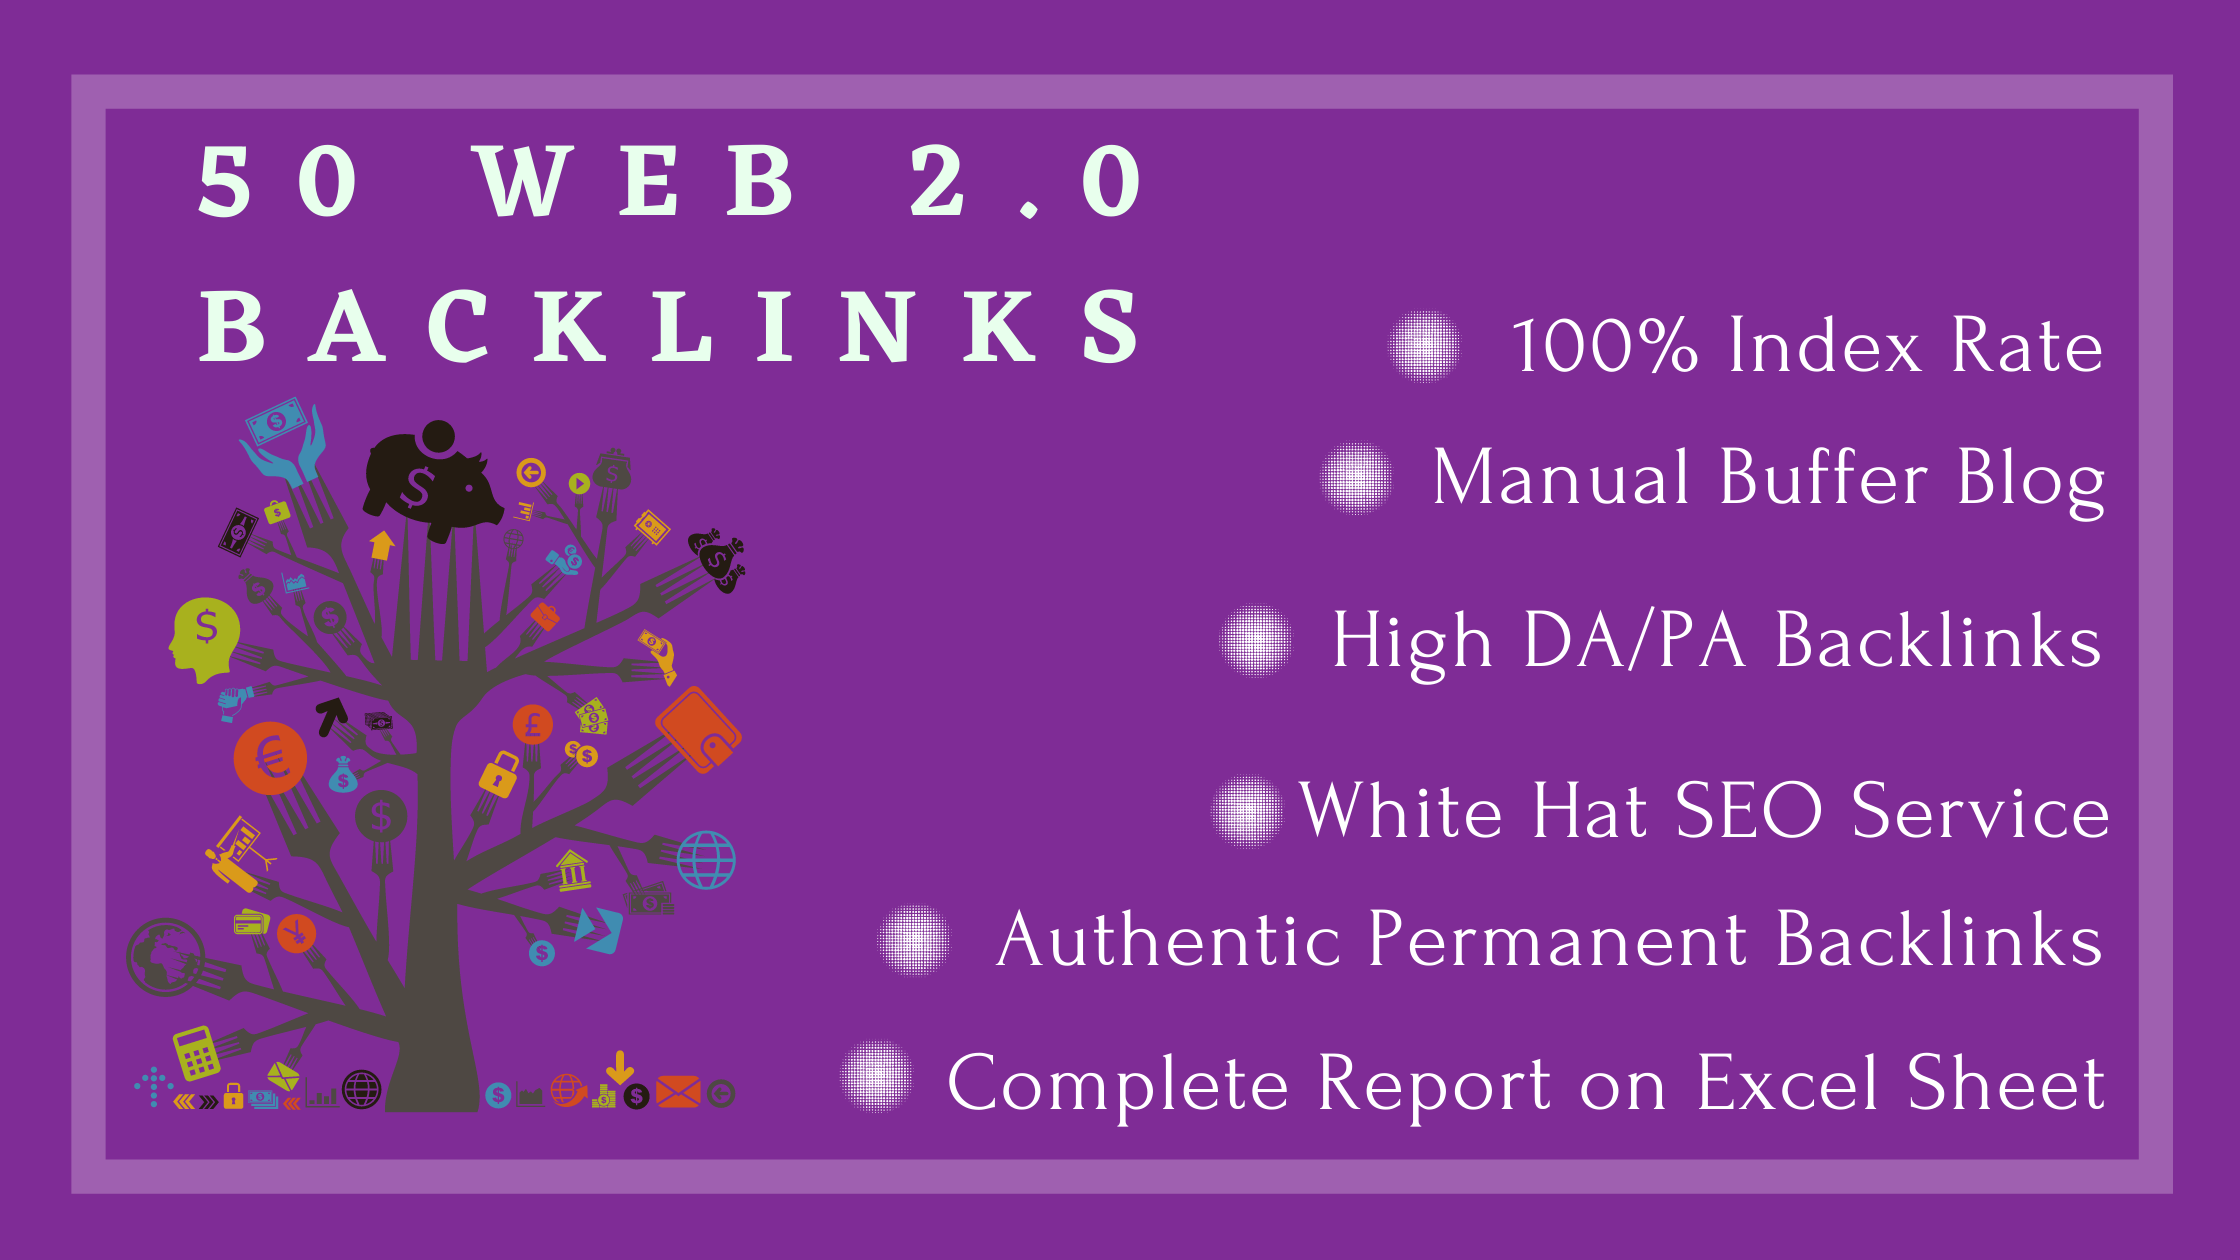 I will provide 50 high authority web 2.0 backlinks to boost your website in google on the first page